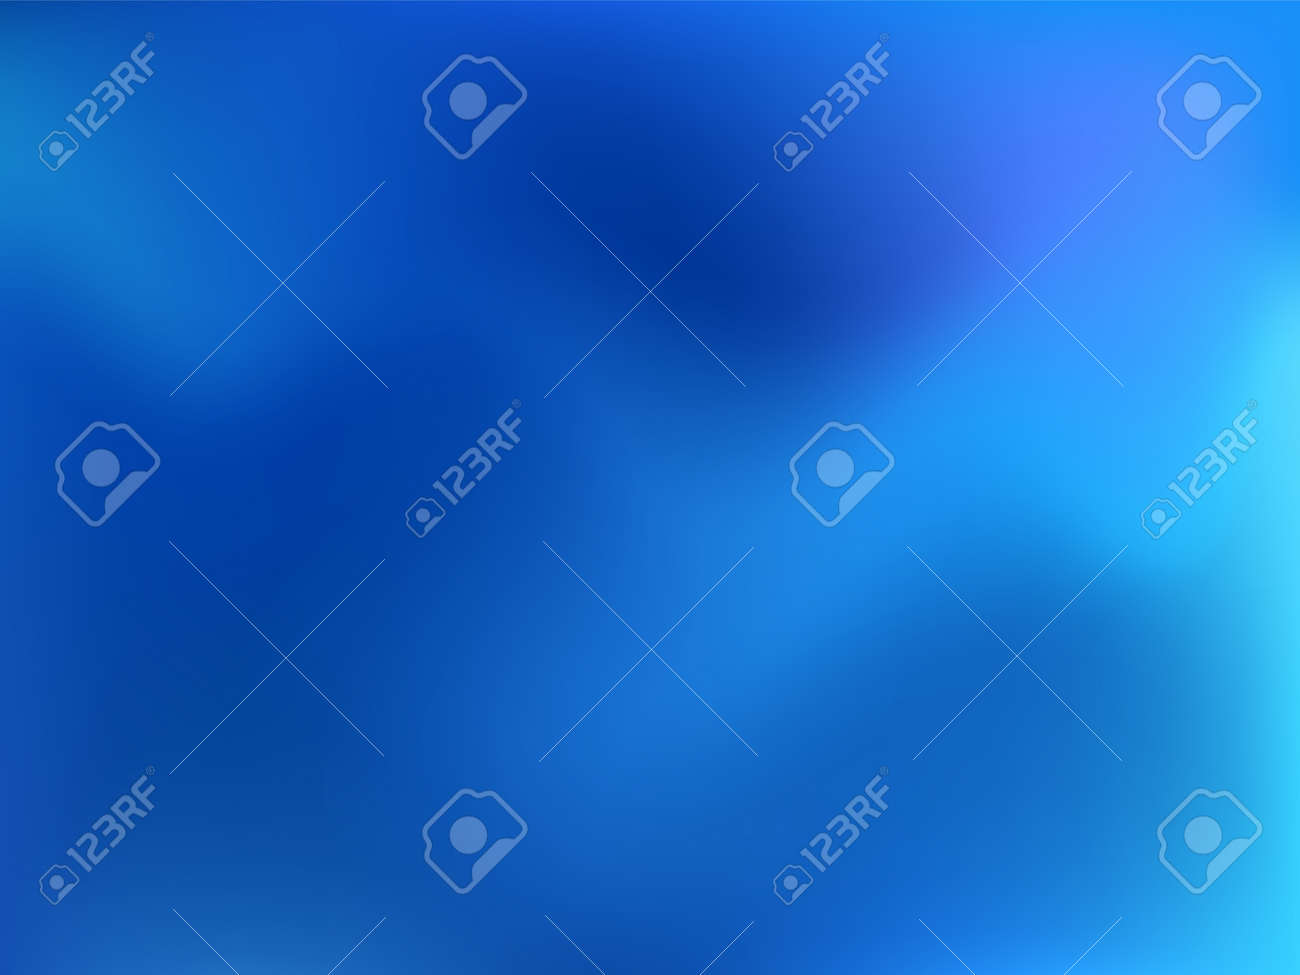 Holographic background. Bright, smooth mesh with a blurry futuristic pattern. Trendy advertising vector. Intense holographic spectrum gradient for printing products, covers. - 167565732